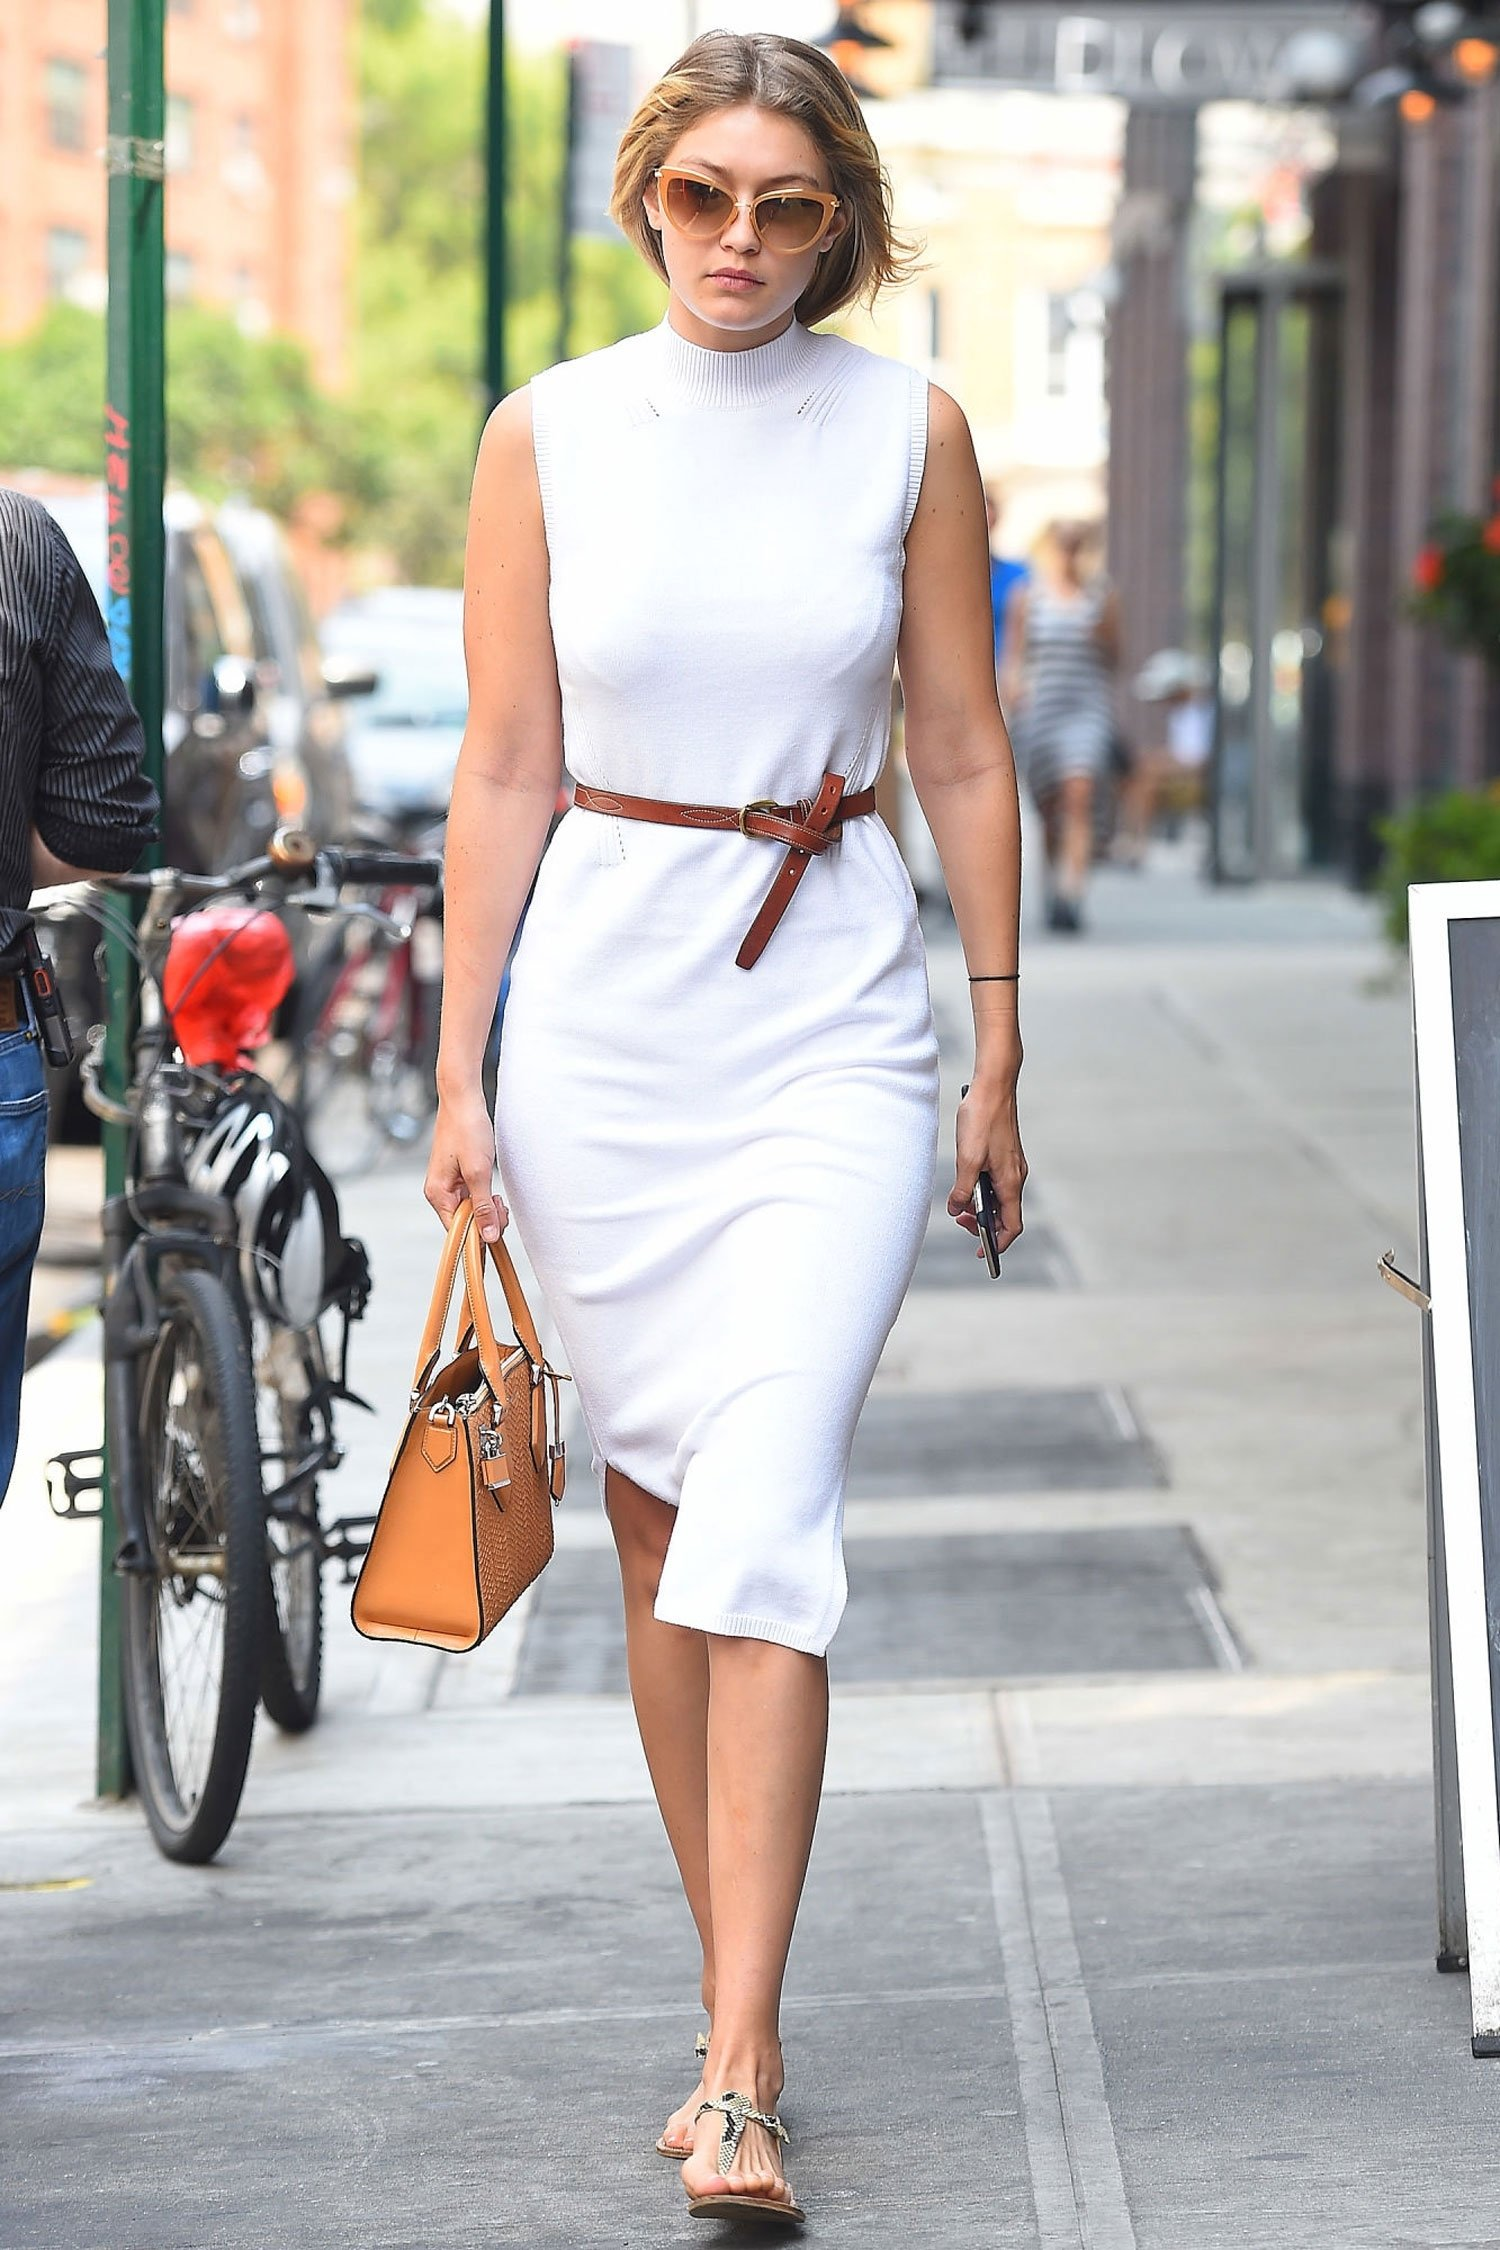 all white party dress ideas for women-19 perfect white outfits